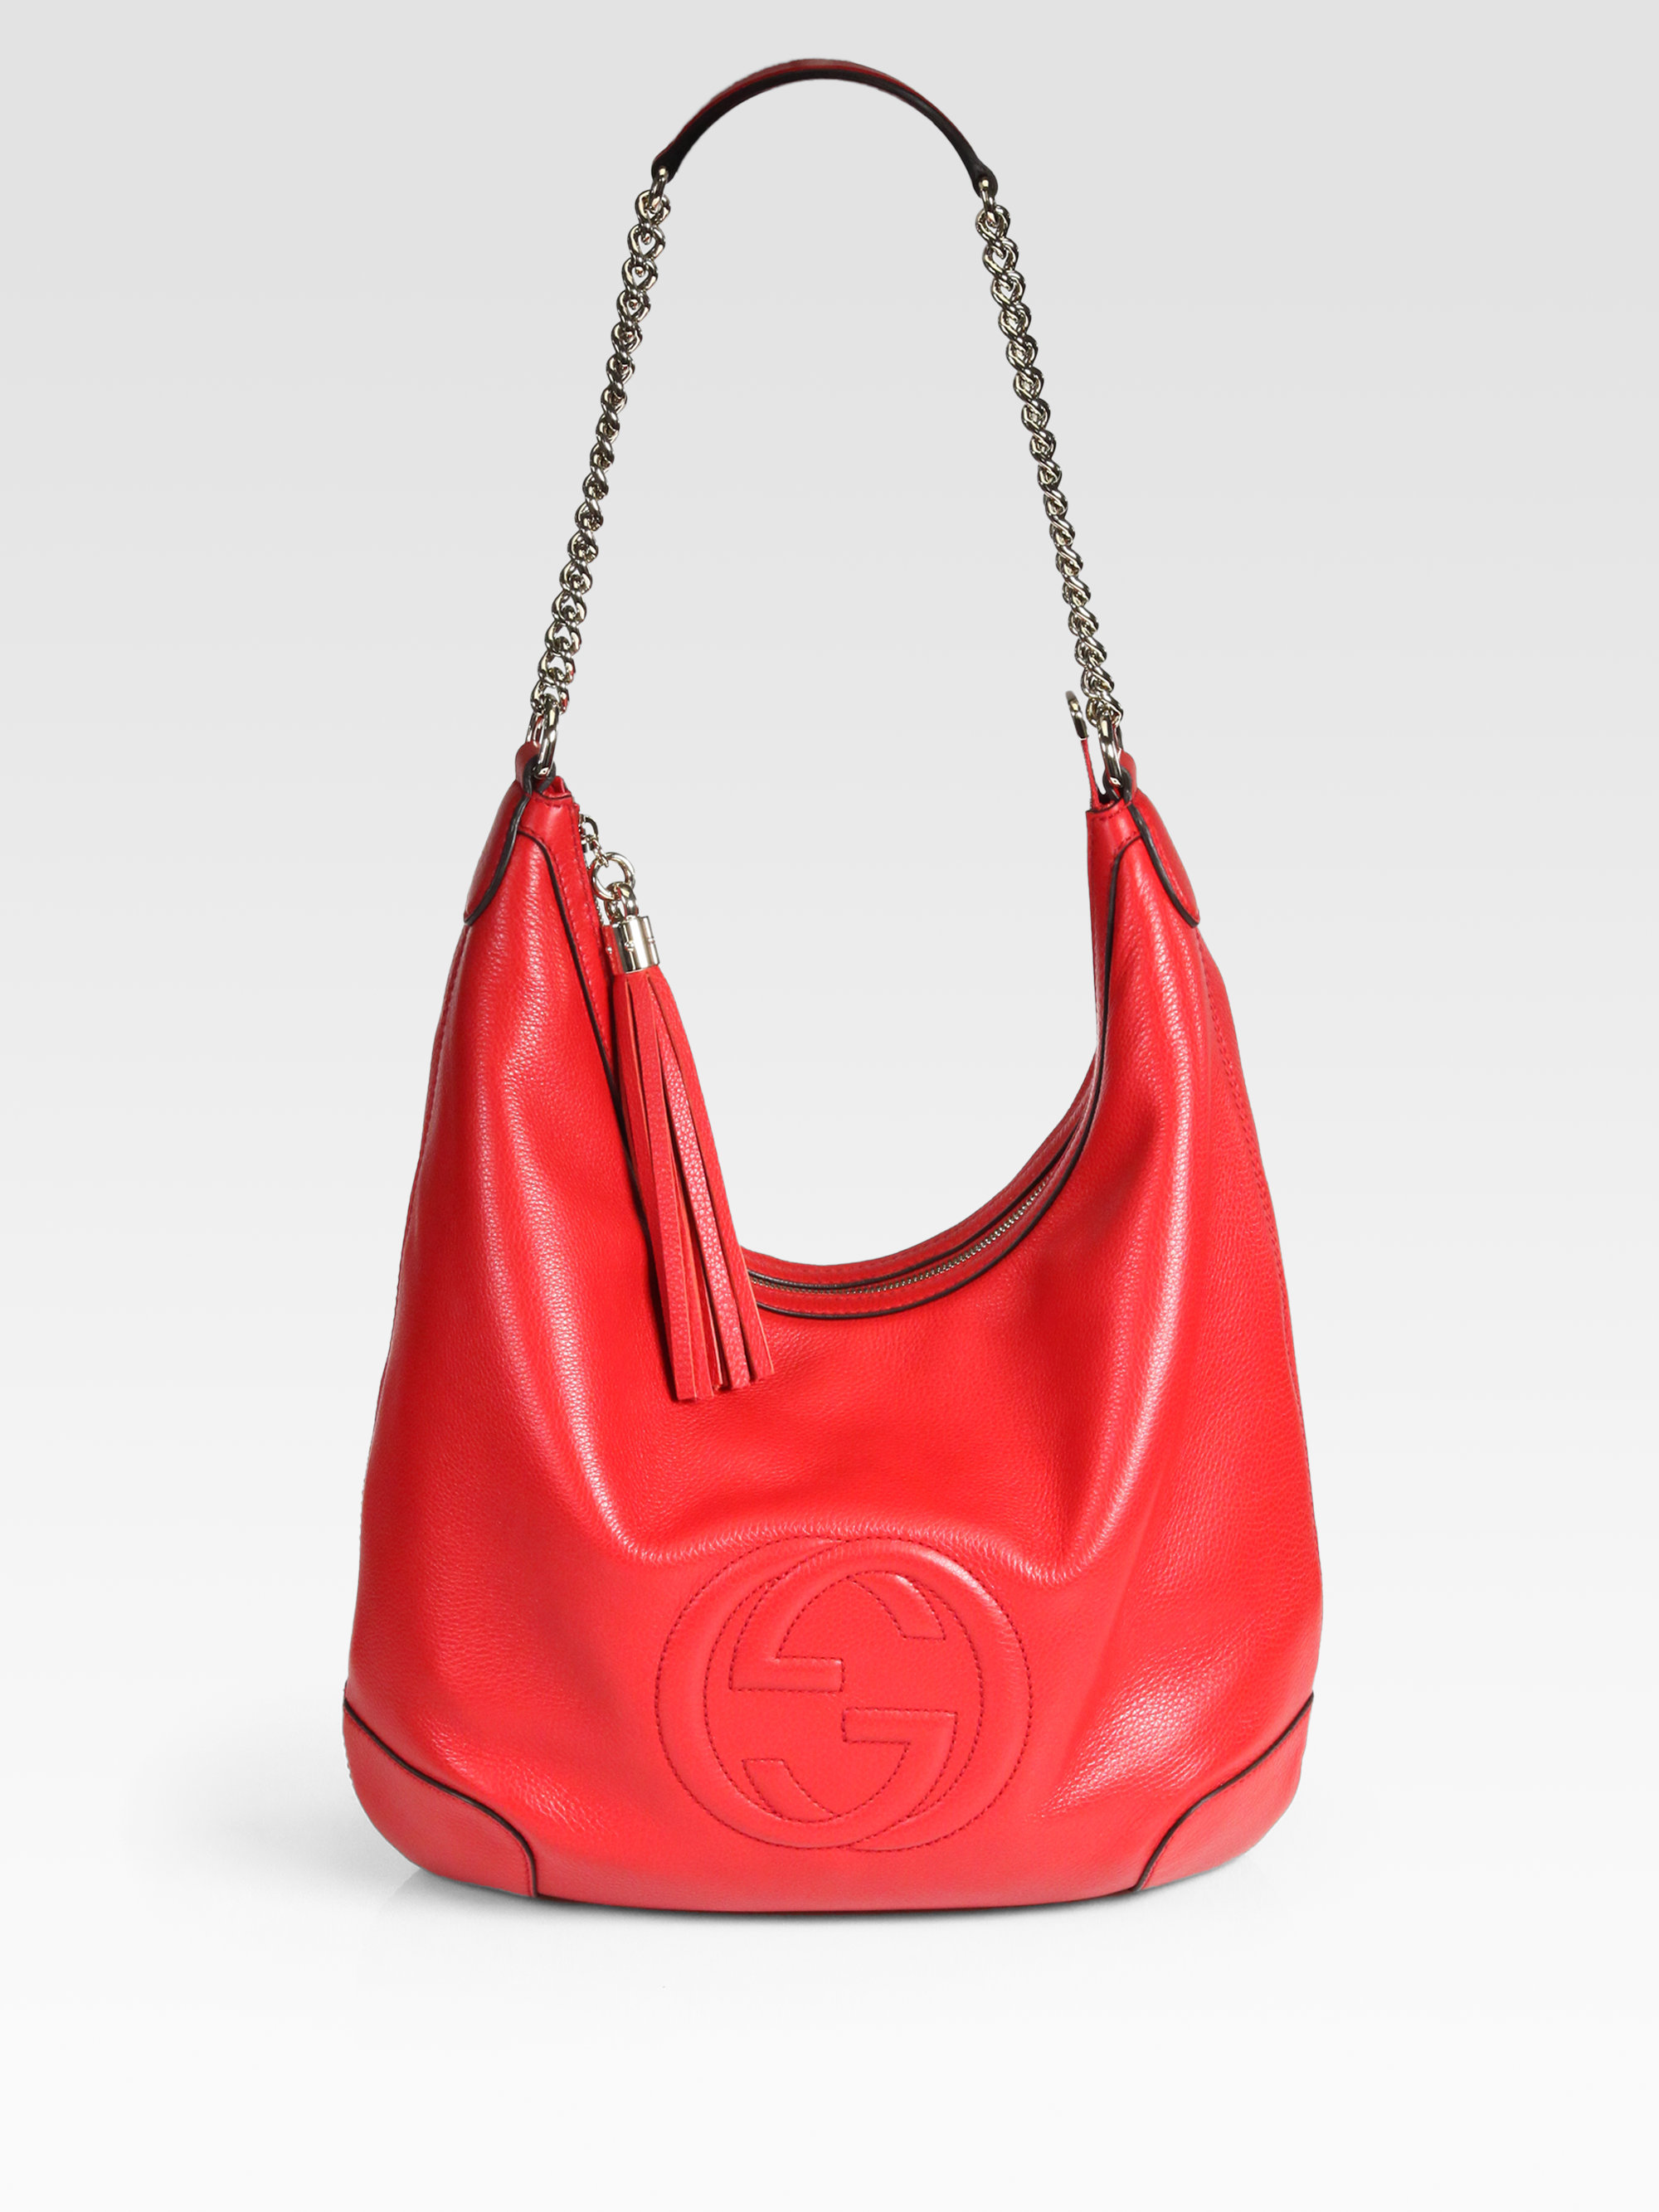 6df6e2127318 Lyst - Gucci Soho Leather Chain Hobo Bag in Red